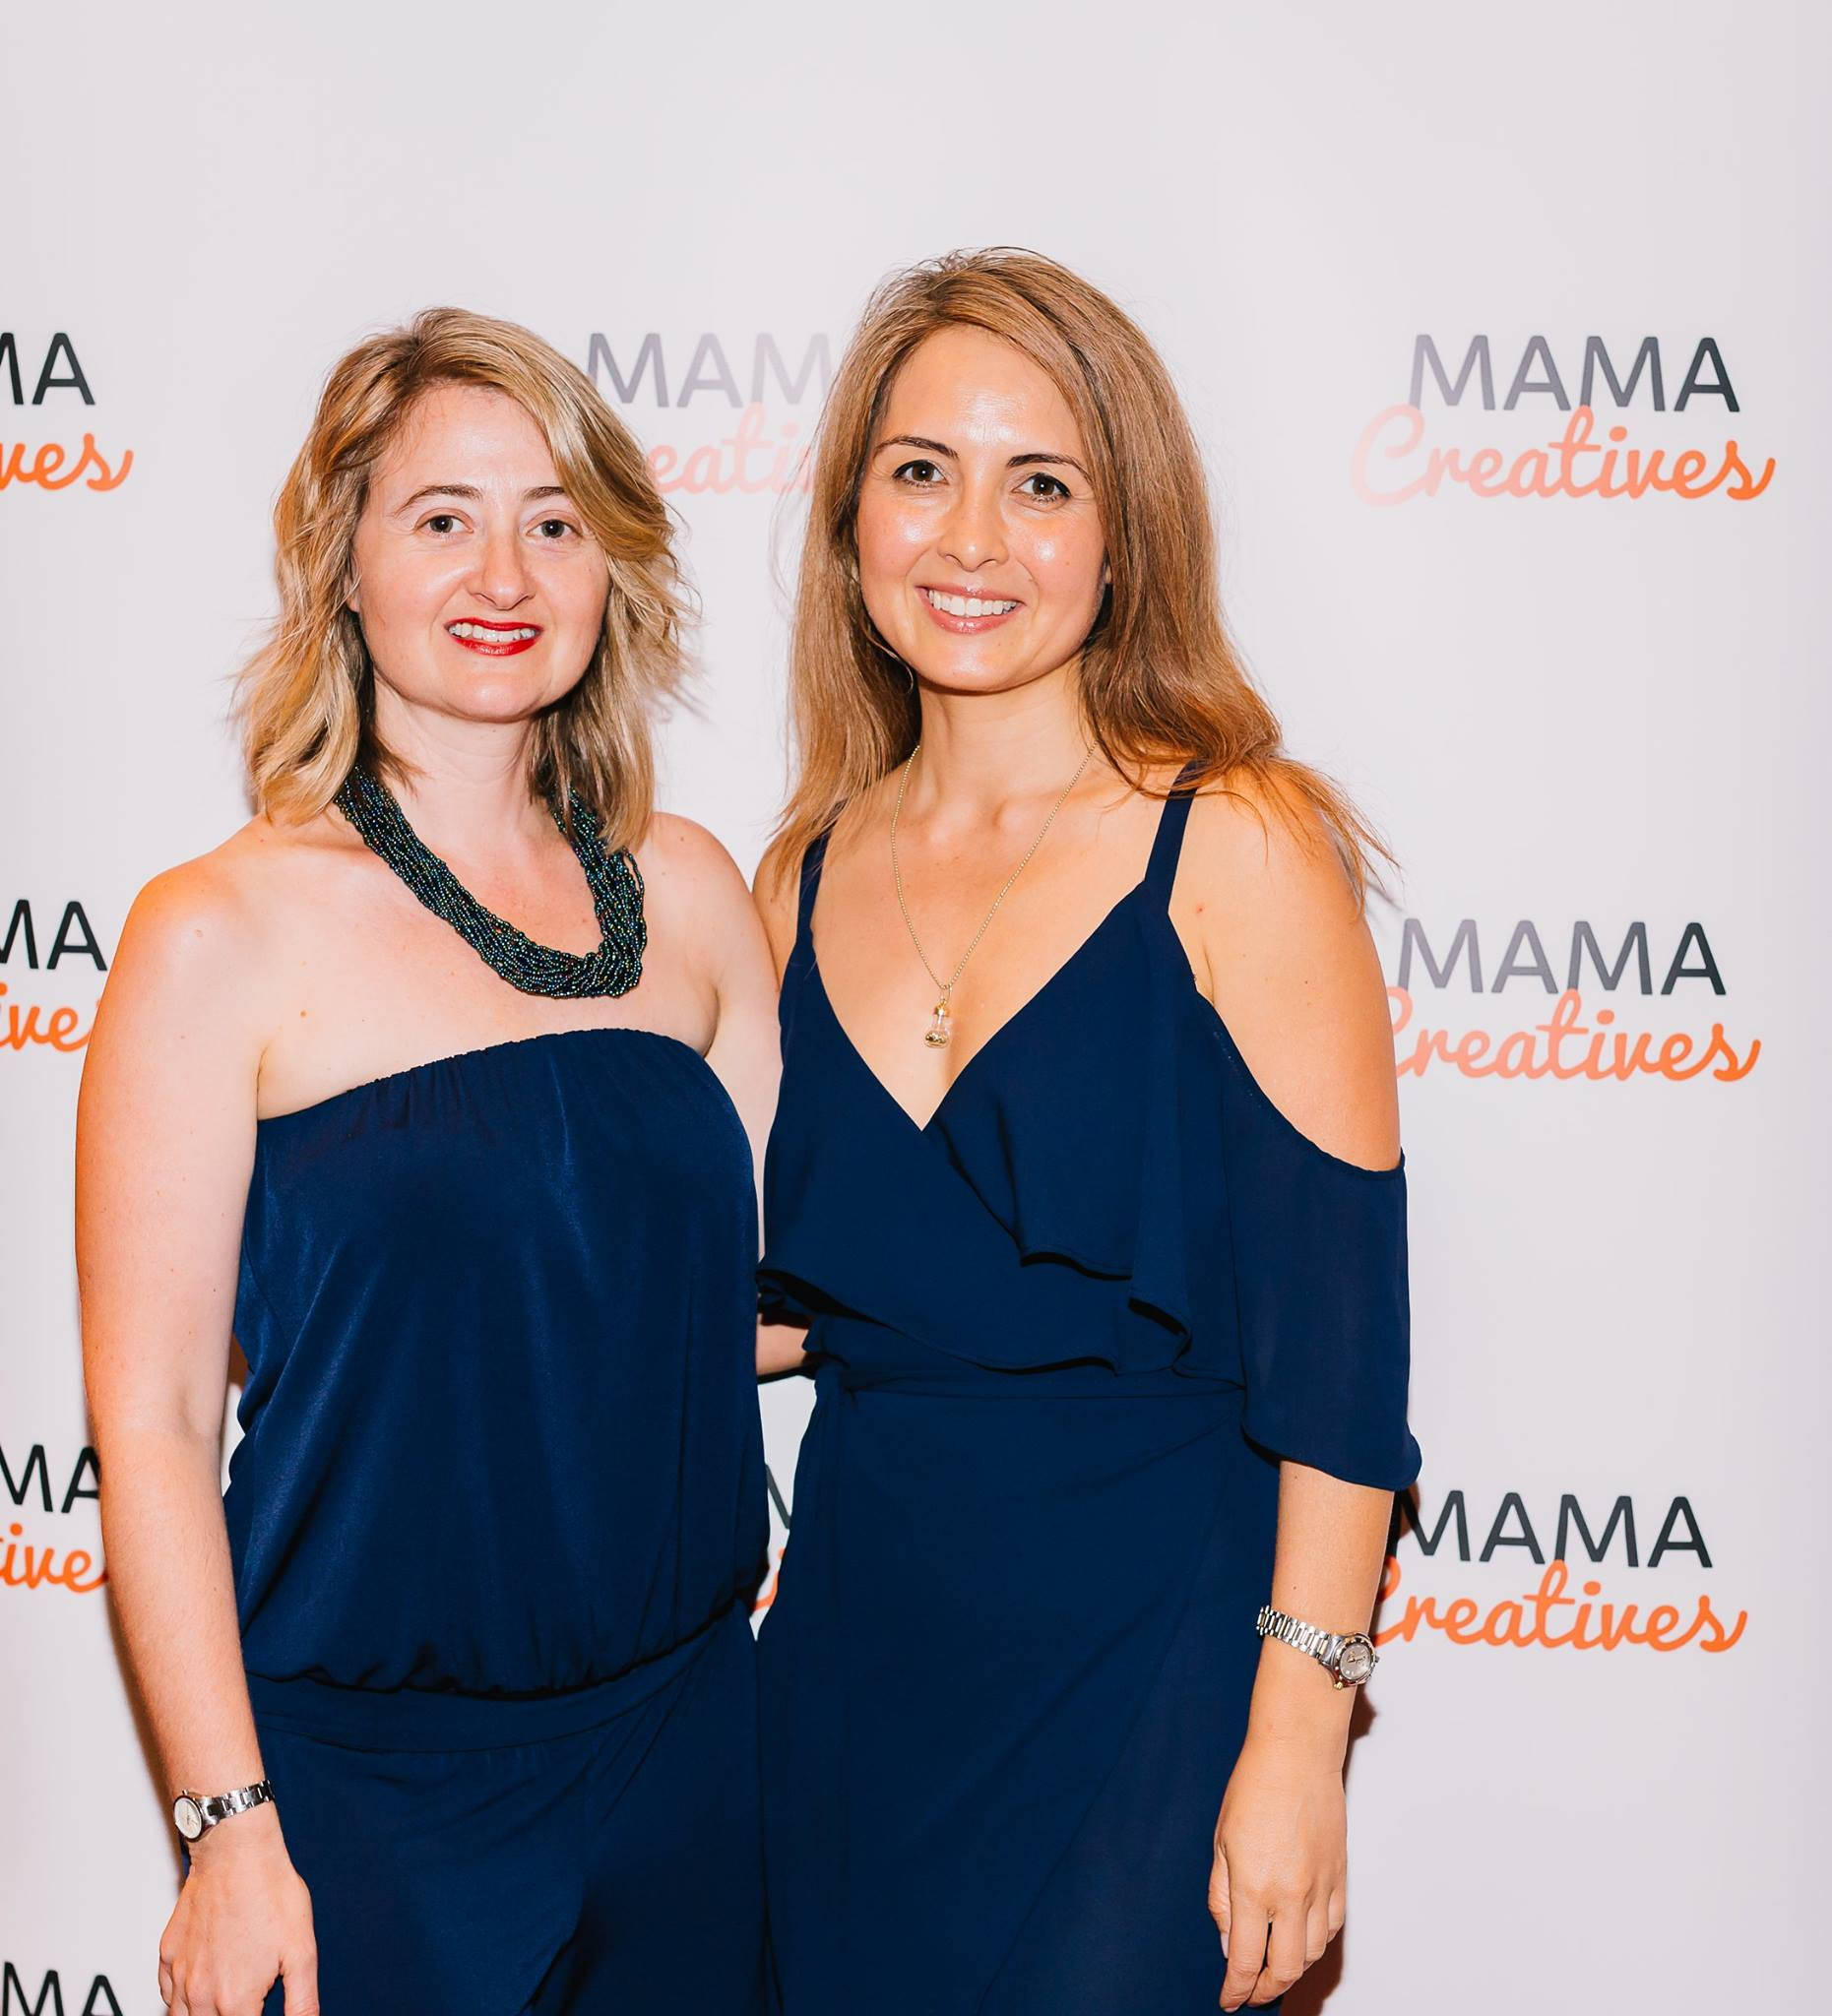 Honoured to stand next to this very special creative mama Stephanie Chiu.